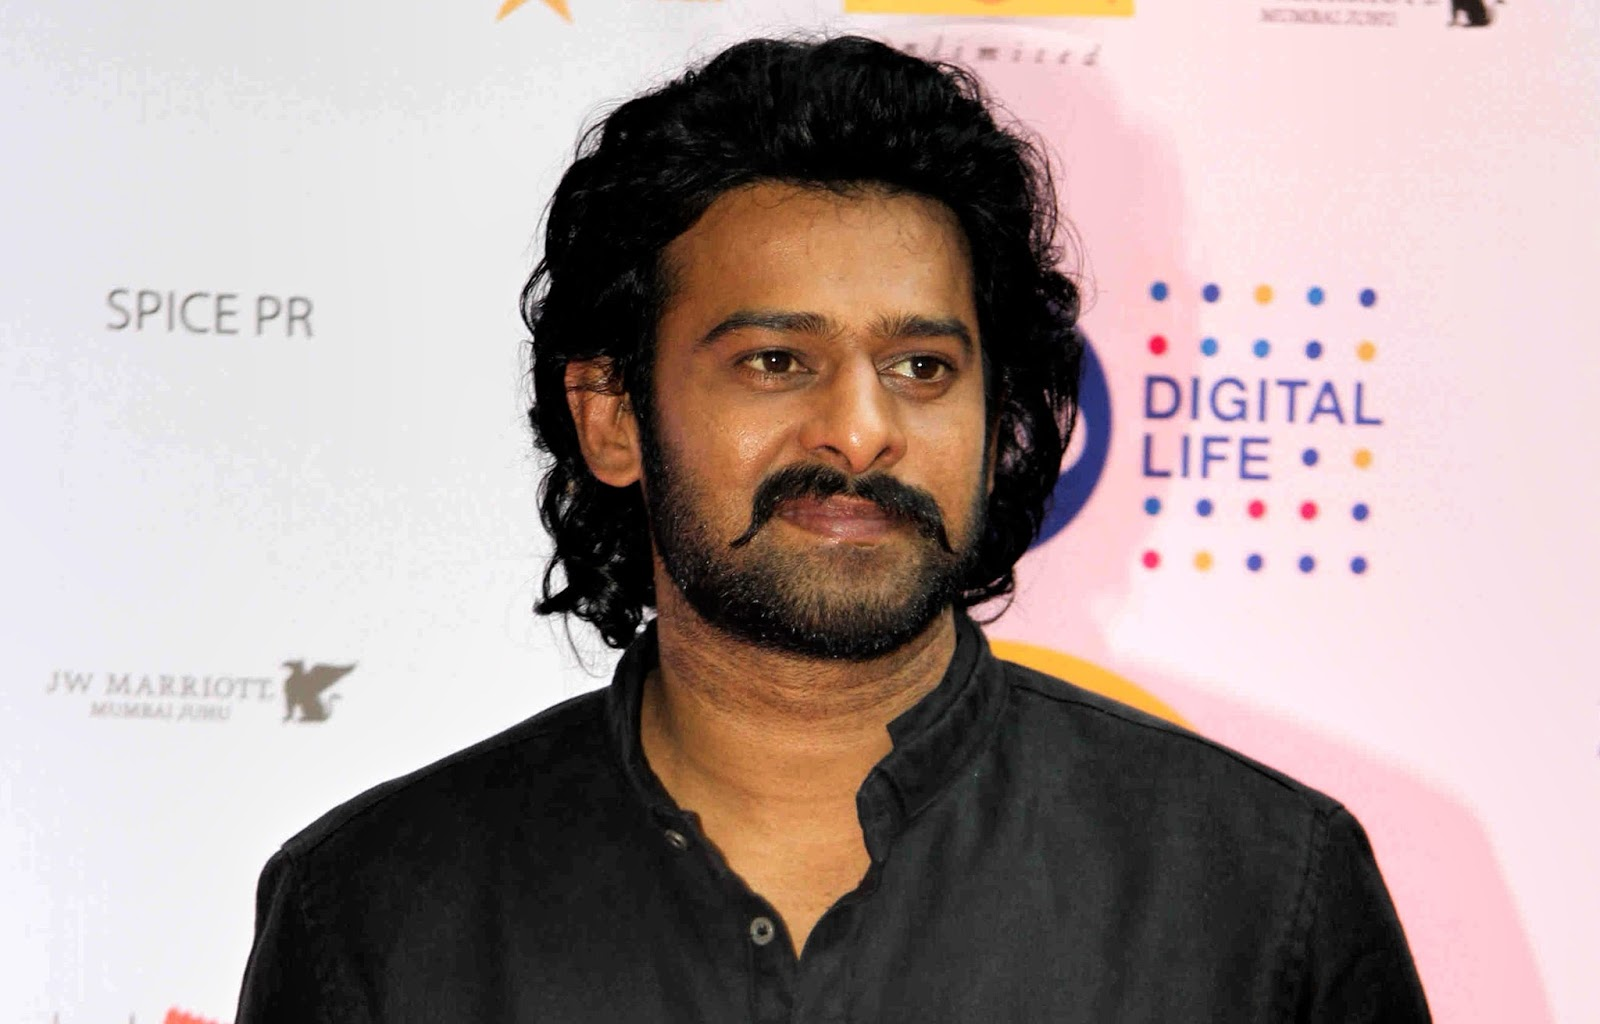 Best Actor Prabhas Hd Wallpaper: Prabhas Photos 2017 - Latest Full HD Wallpapers